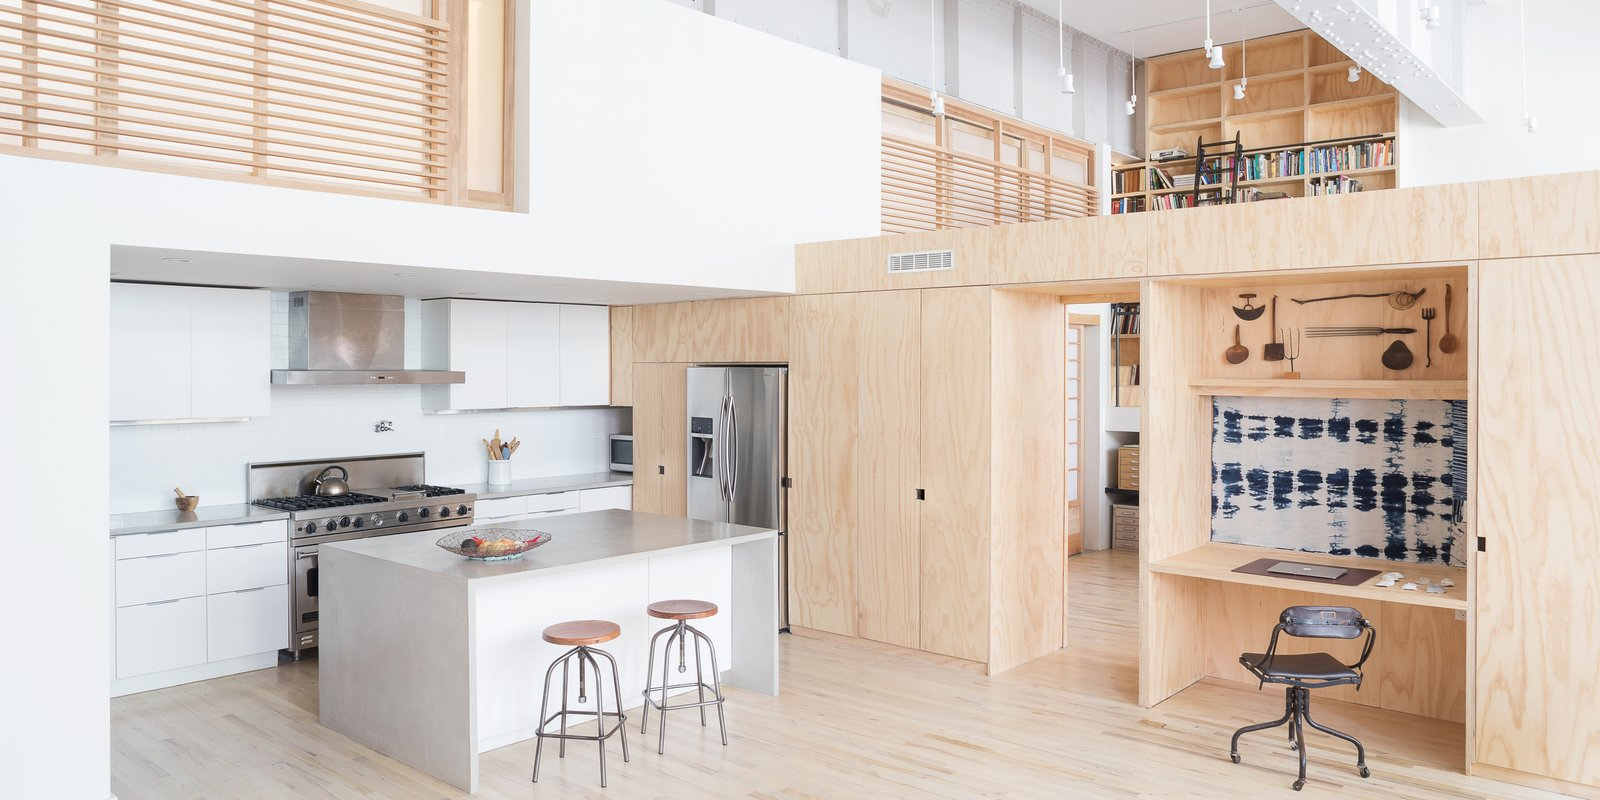 A 19th-Century Carriage House Is Transformed Into a Live/Work Residence For a Pair of Artists